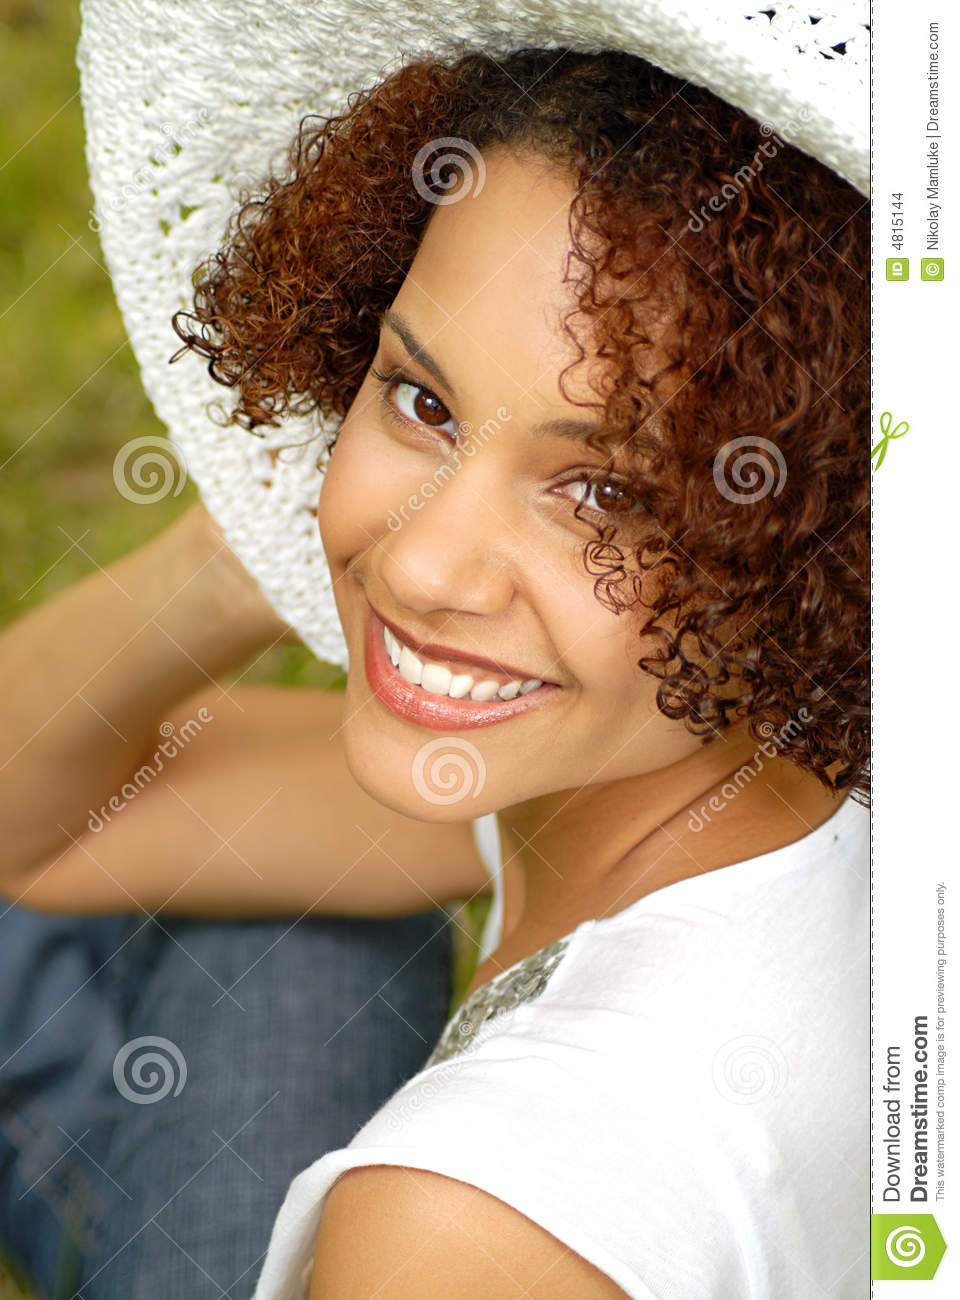 illinois city black girls personals Yummyvibecom is the best african american phone chat line service or phone dating for adult hot talk, companionship, love, and a good time - and that too in your city.